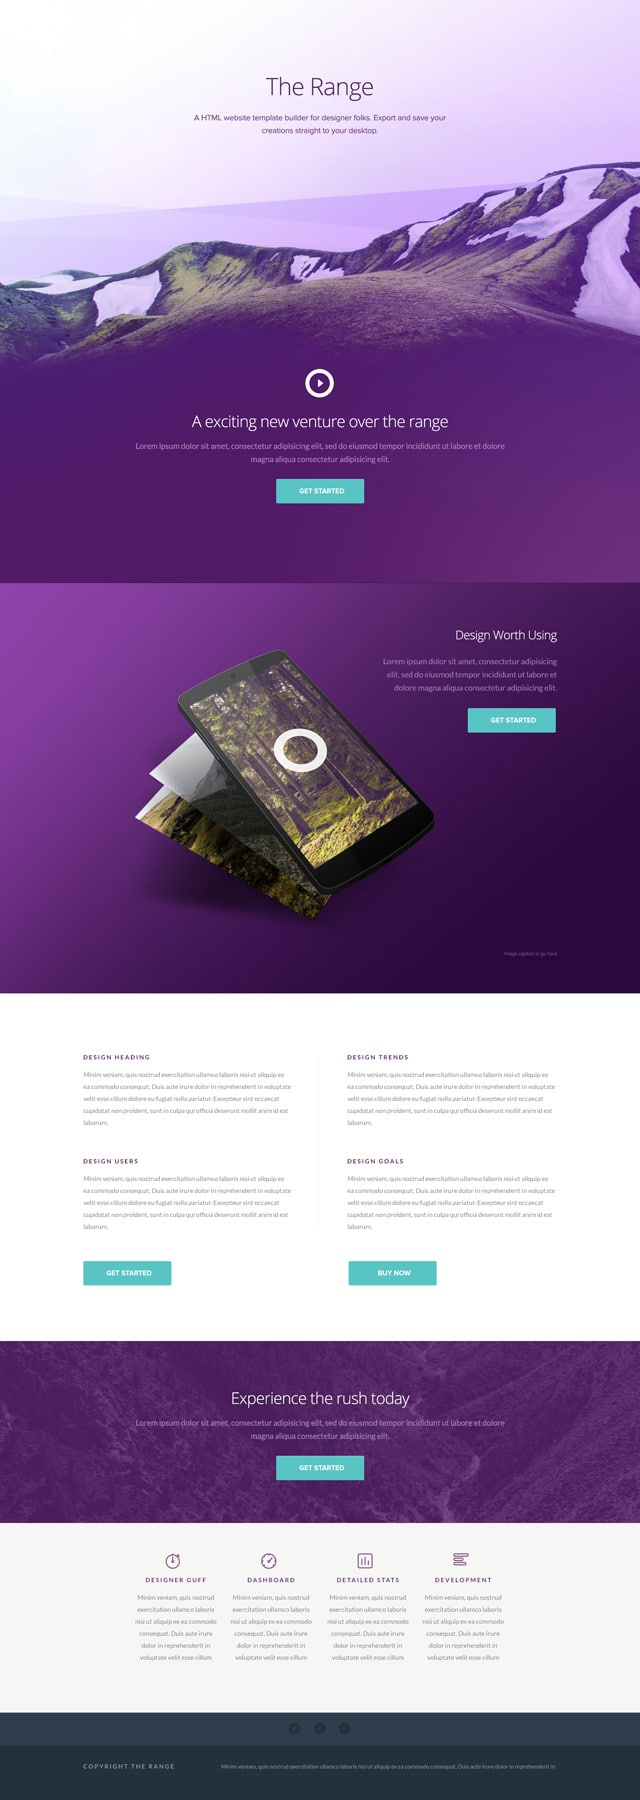 The Range - Single Pager Website Template PSD